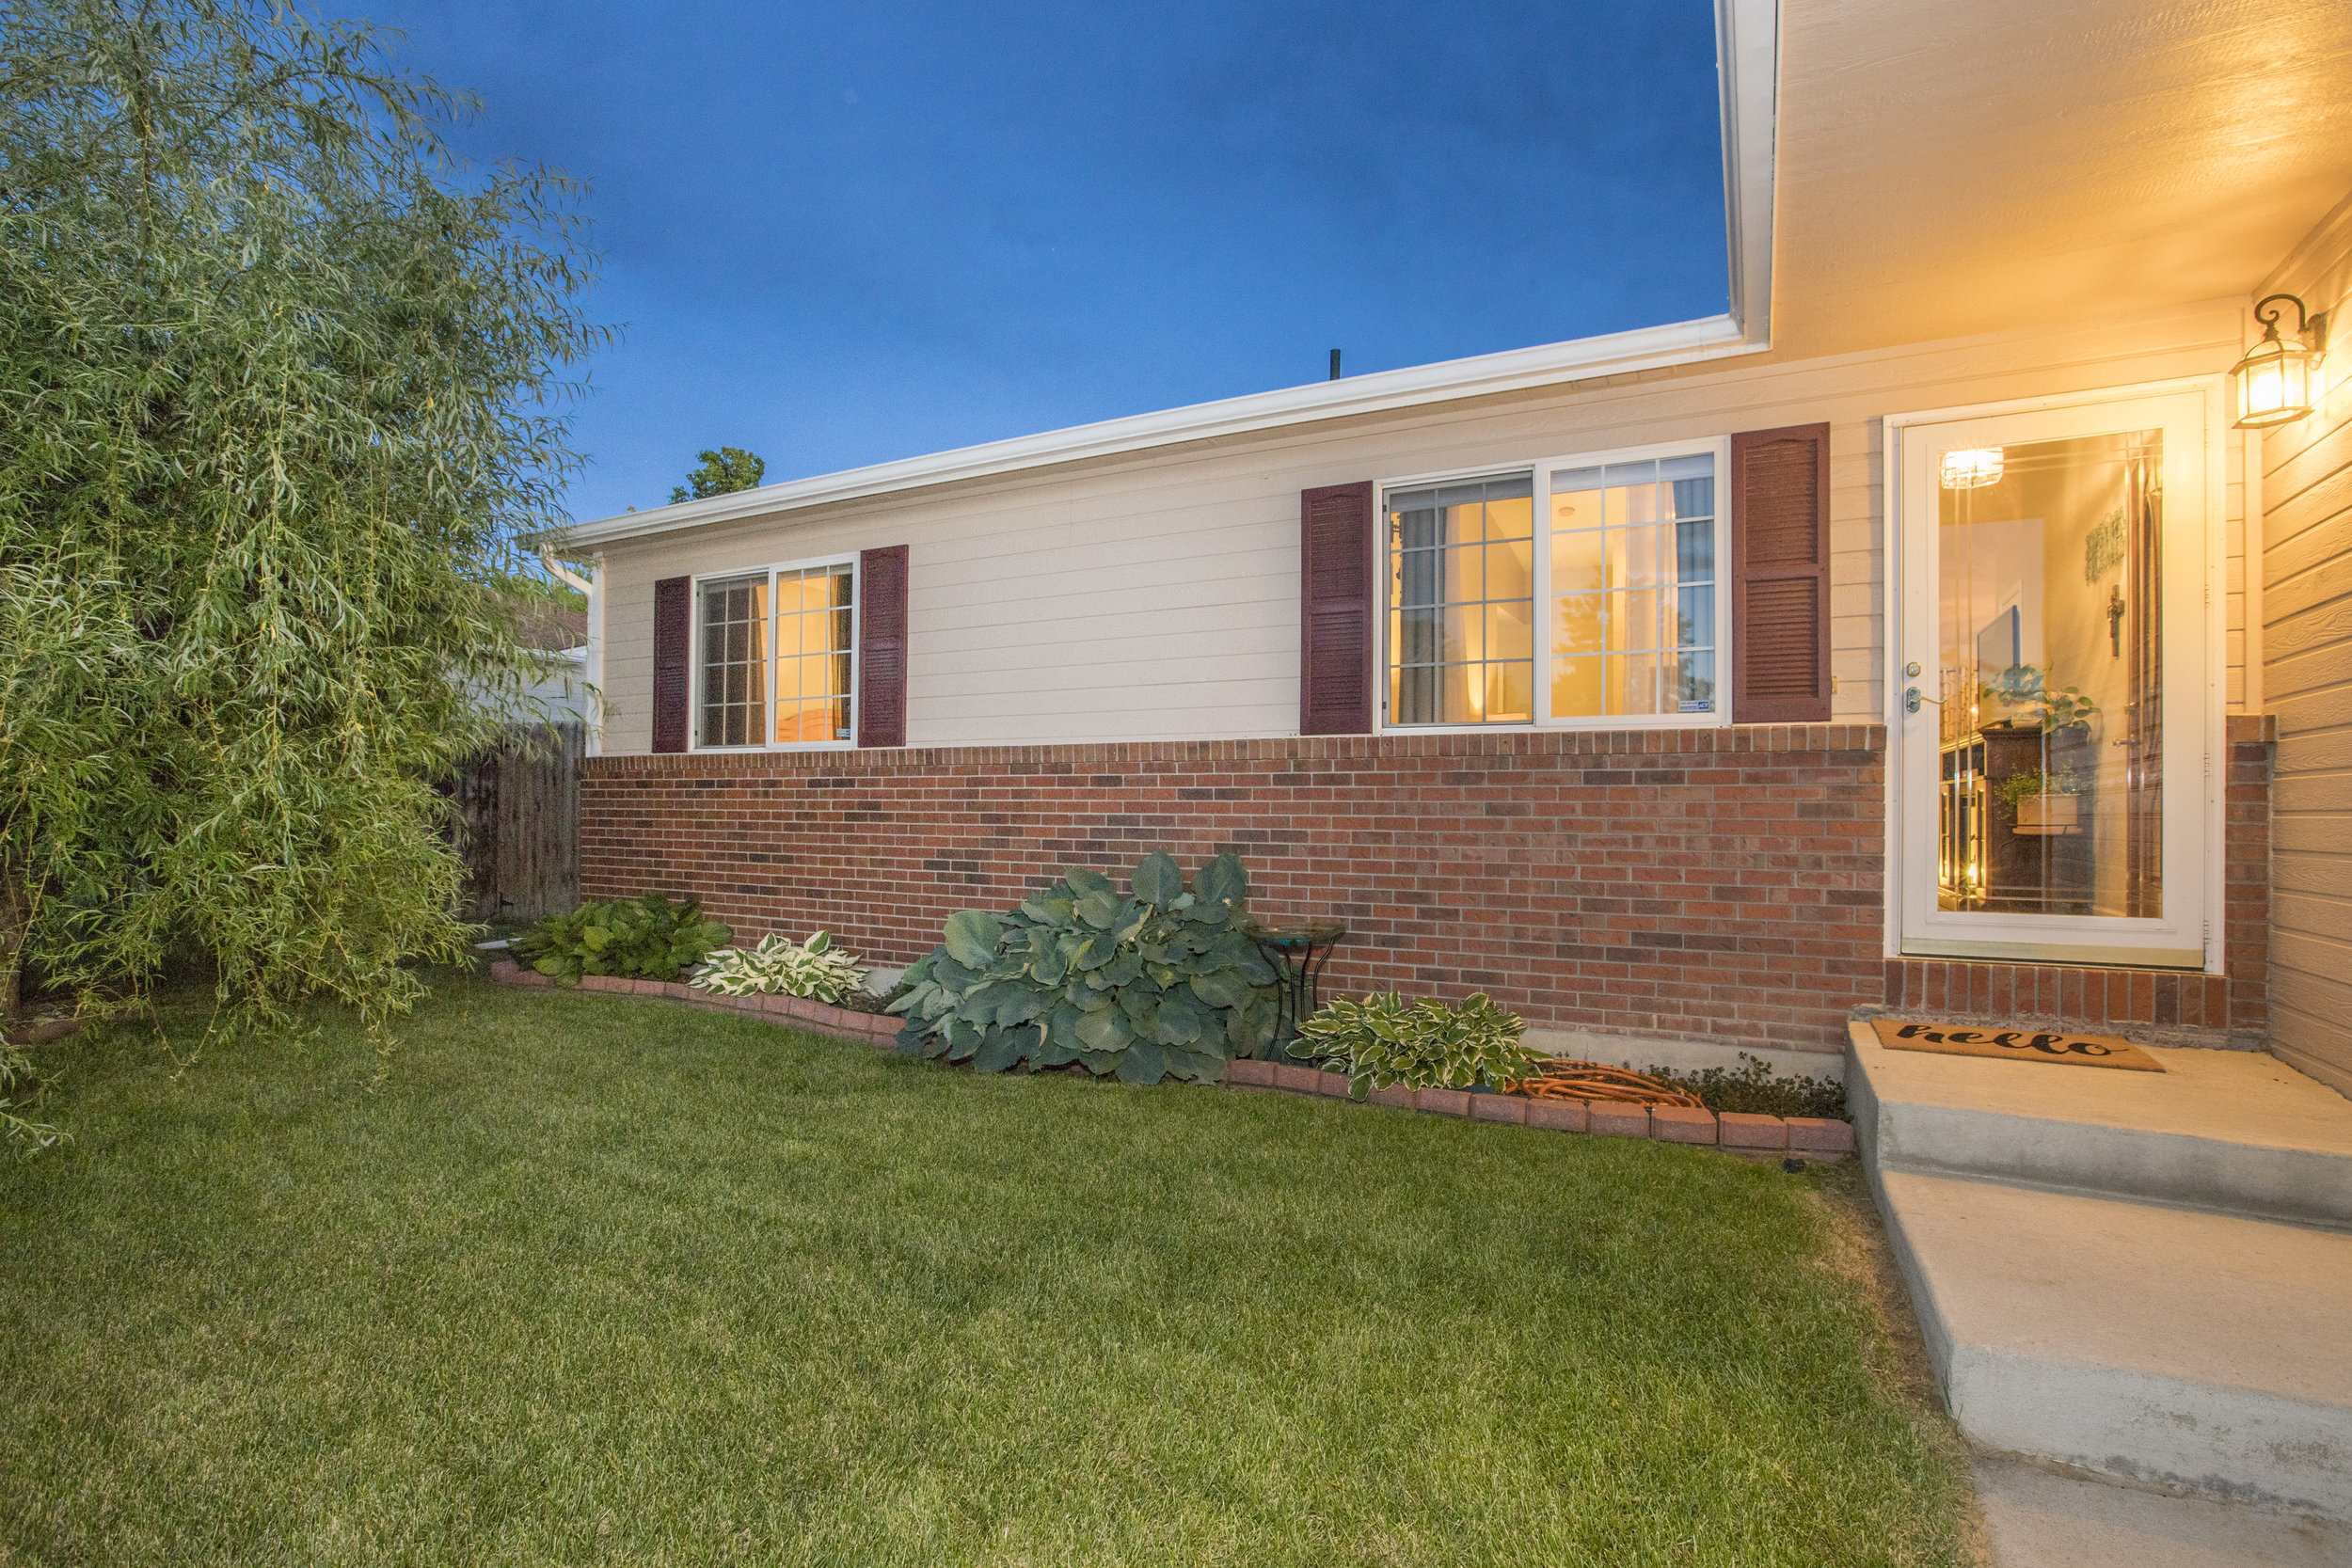 4946W2ndSt-LARGE-41.jpg